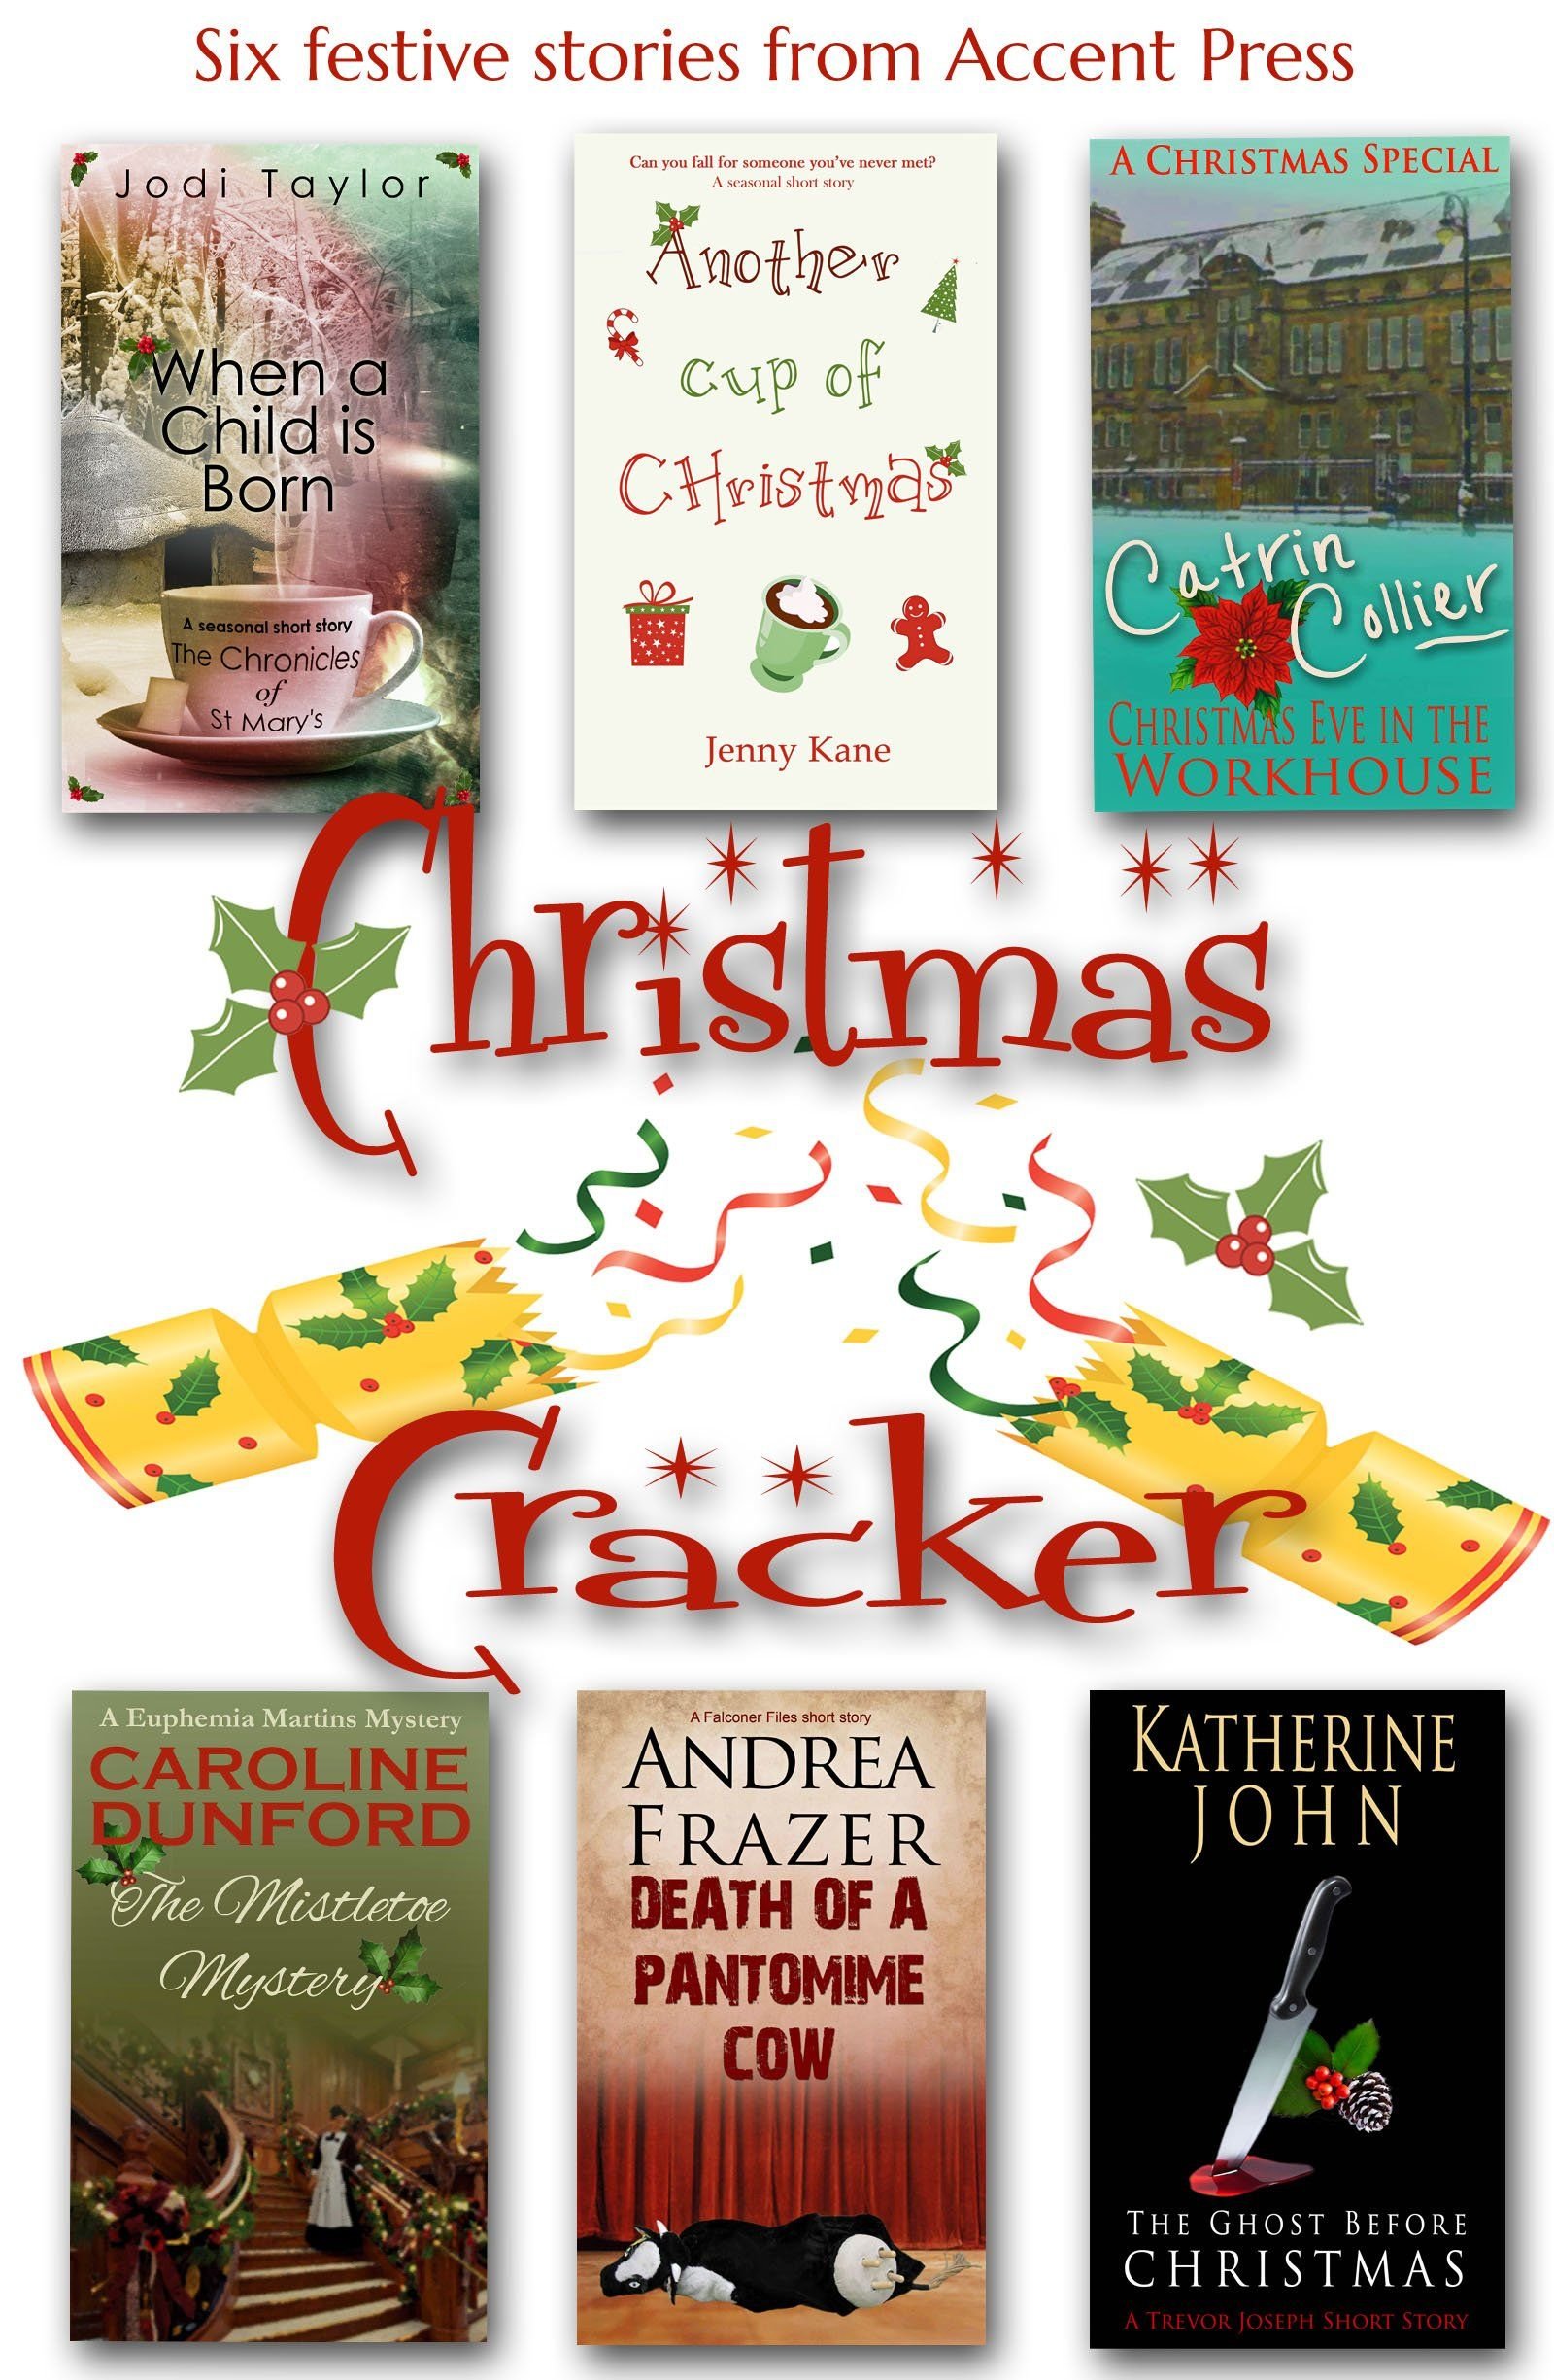 christmas cracker six festive stories from accent pressamazonkindle store